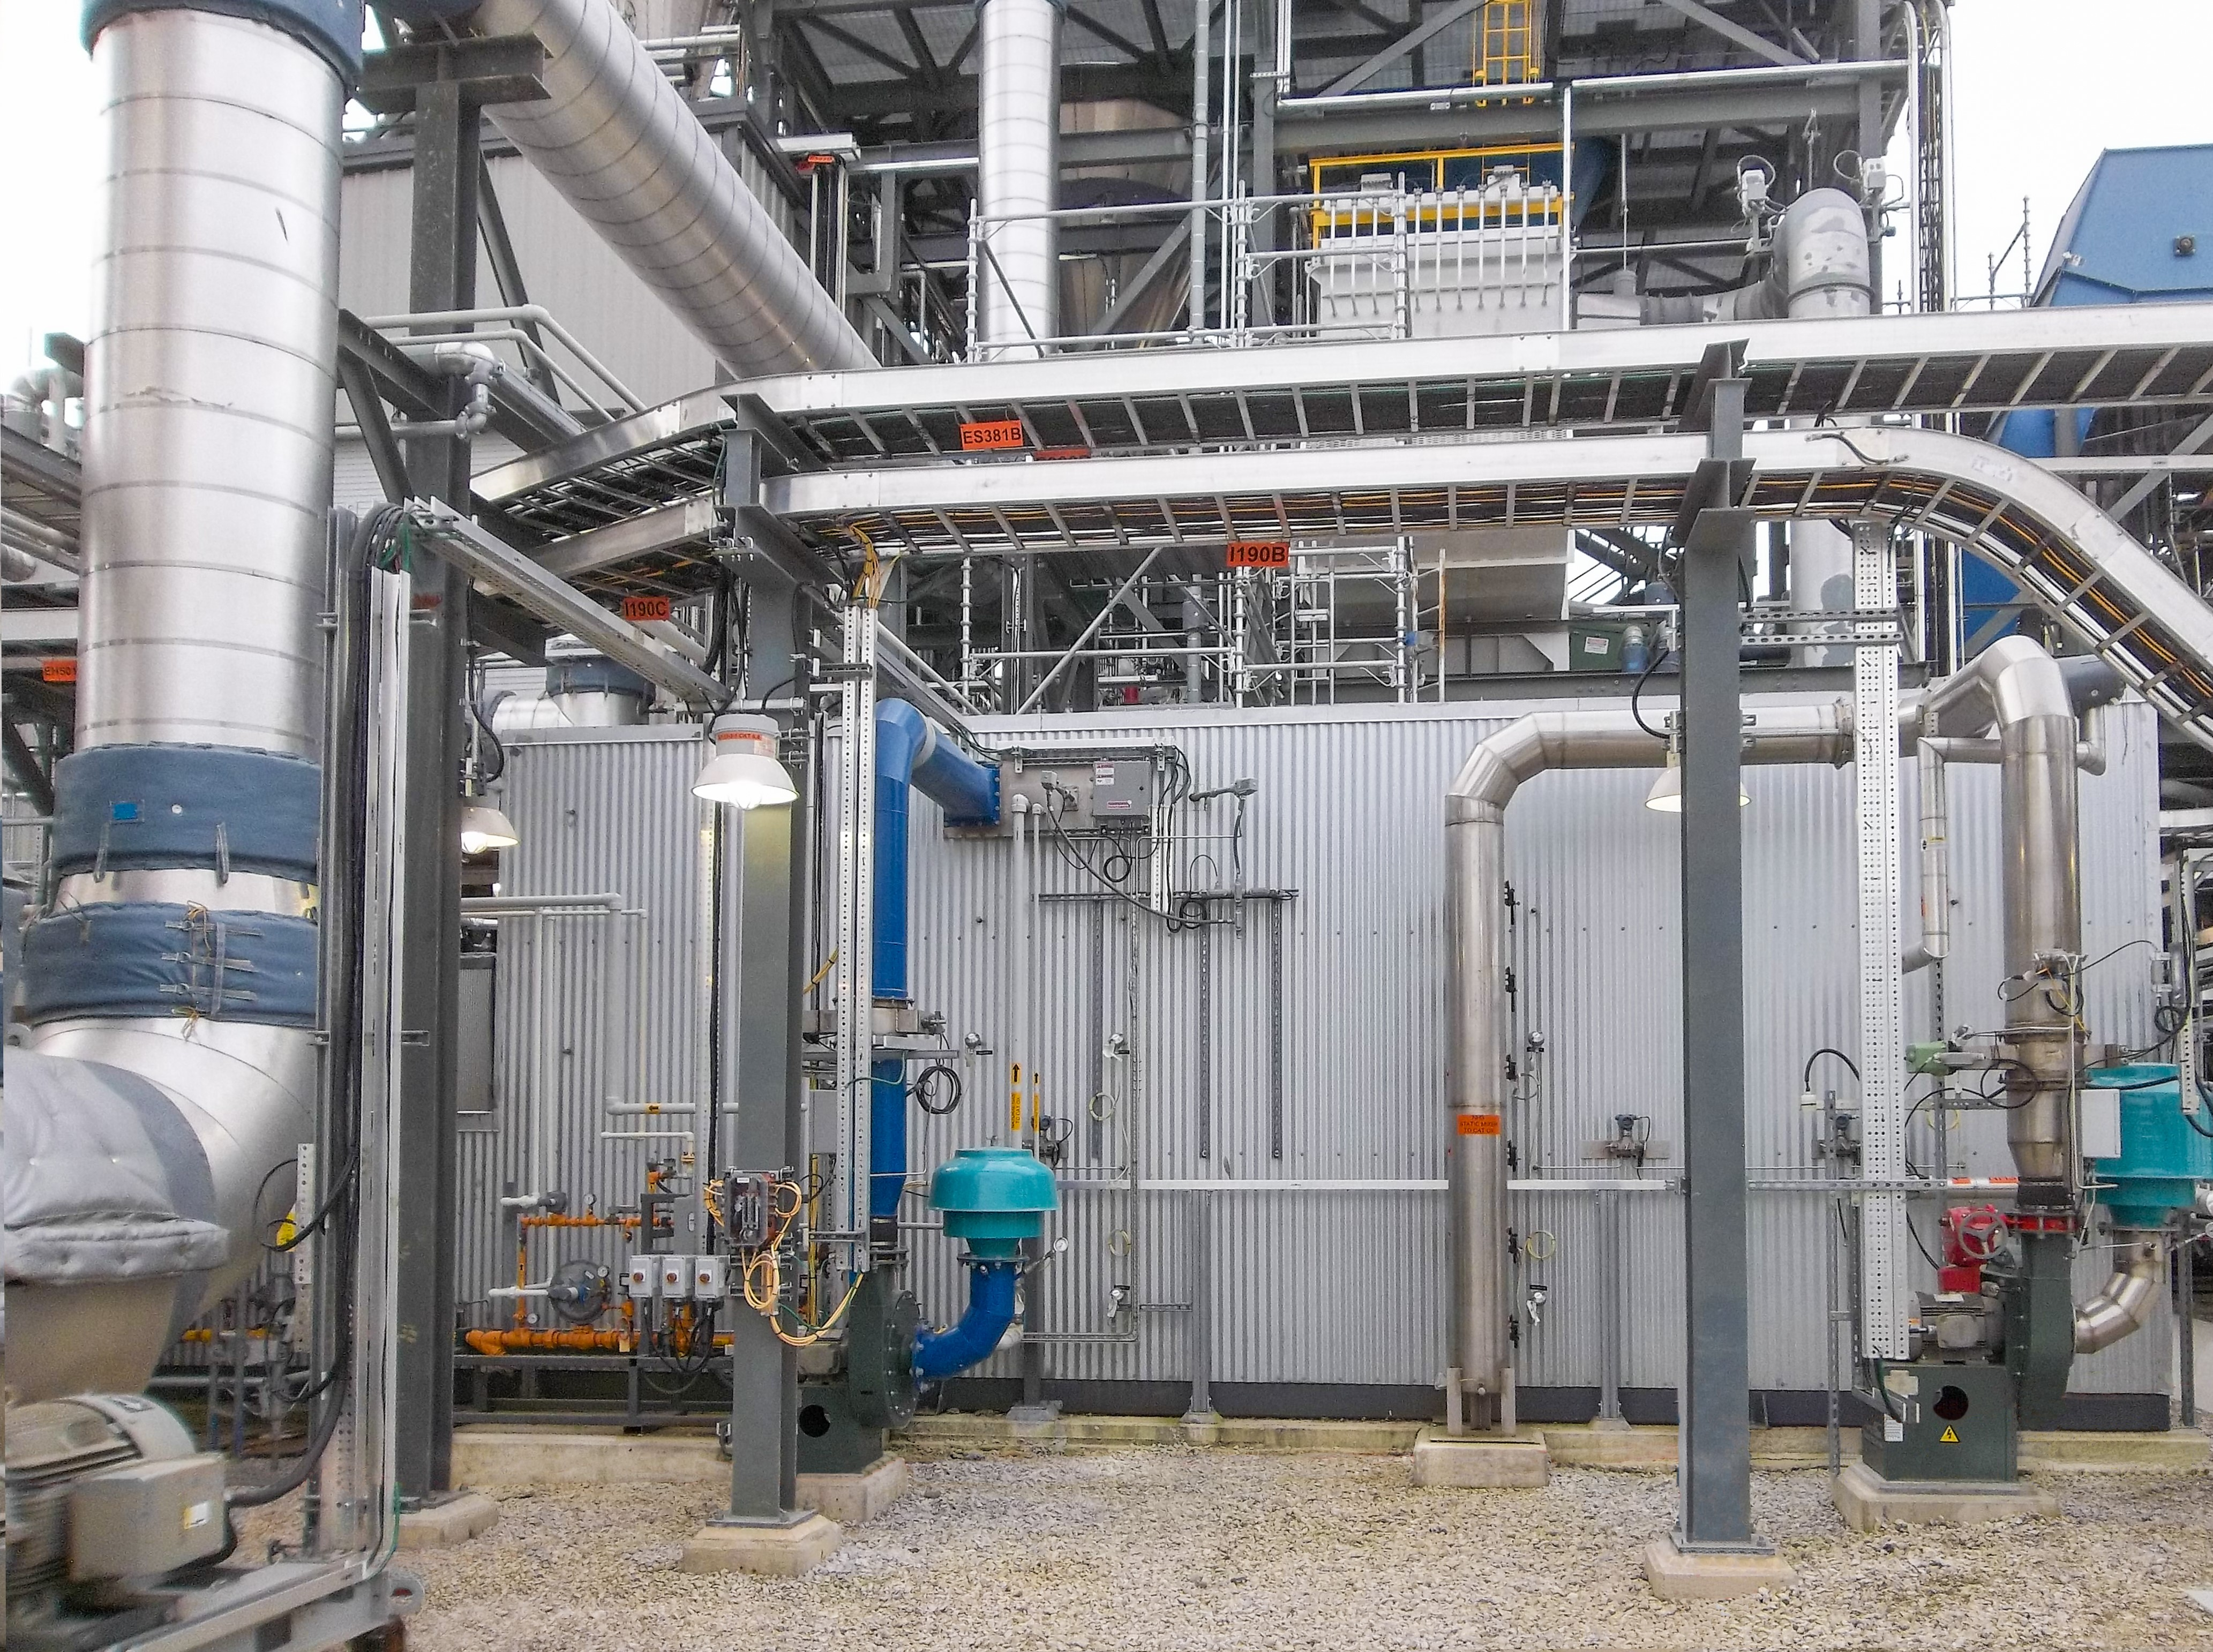 CPI SCR 18,000 Catalytic Oxidizer for Ammonia Removal